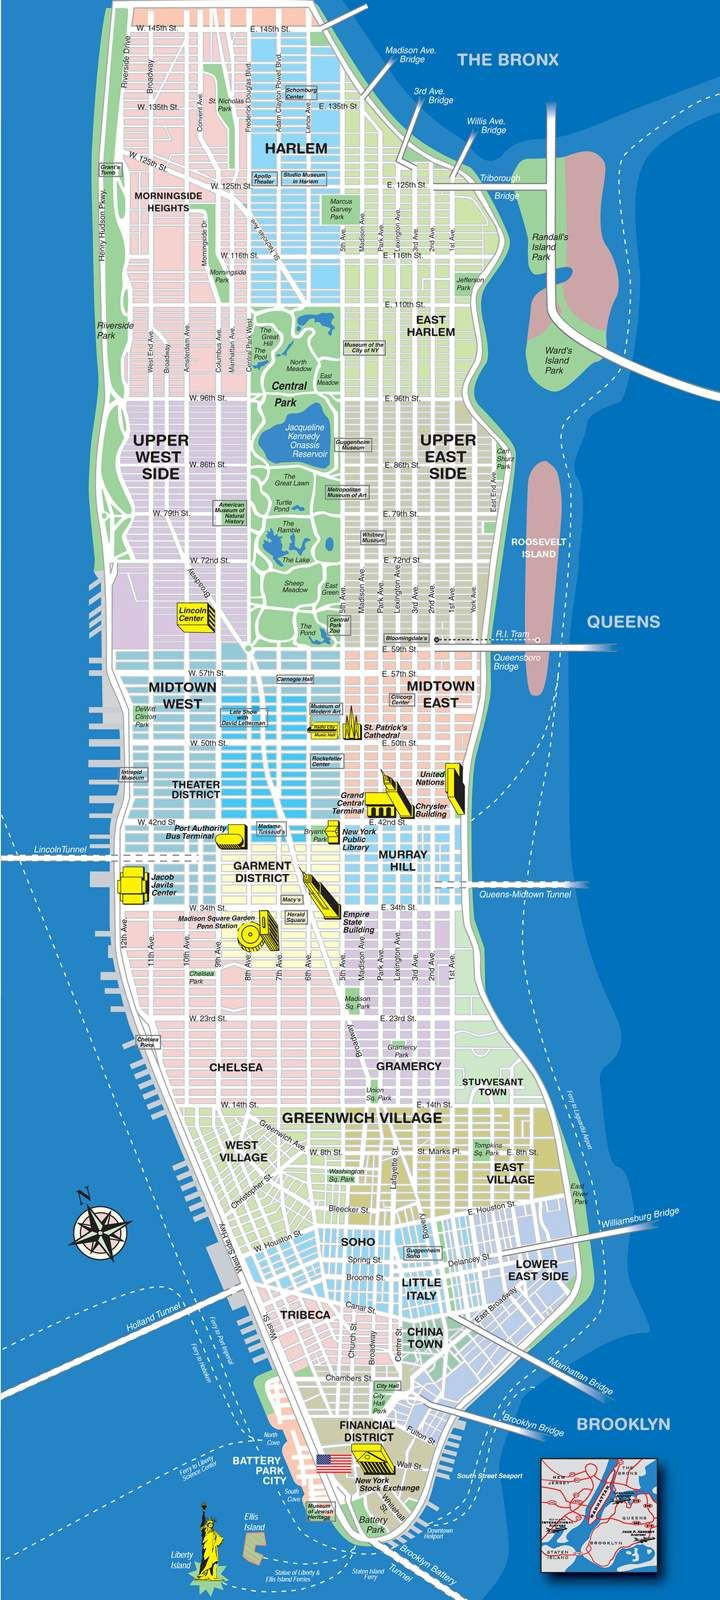 Printable Map Manhattan Lovely High Resolution Map Of Manhattan For Print Or